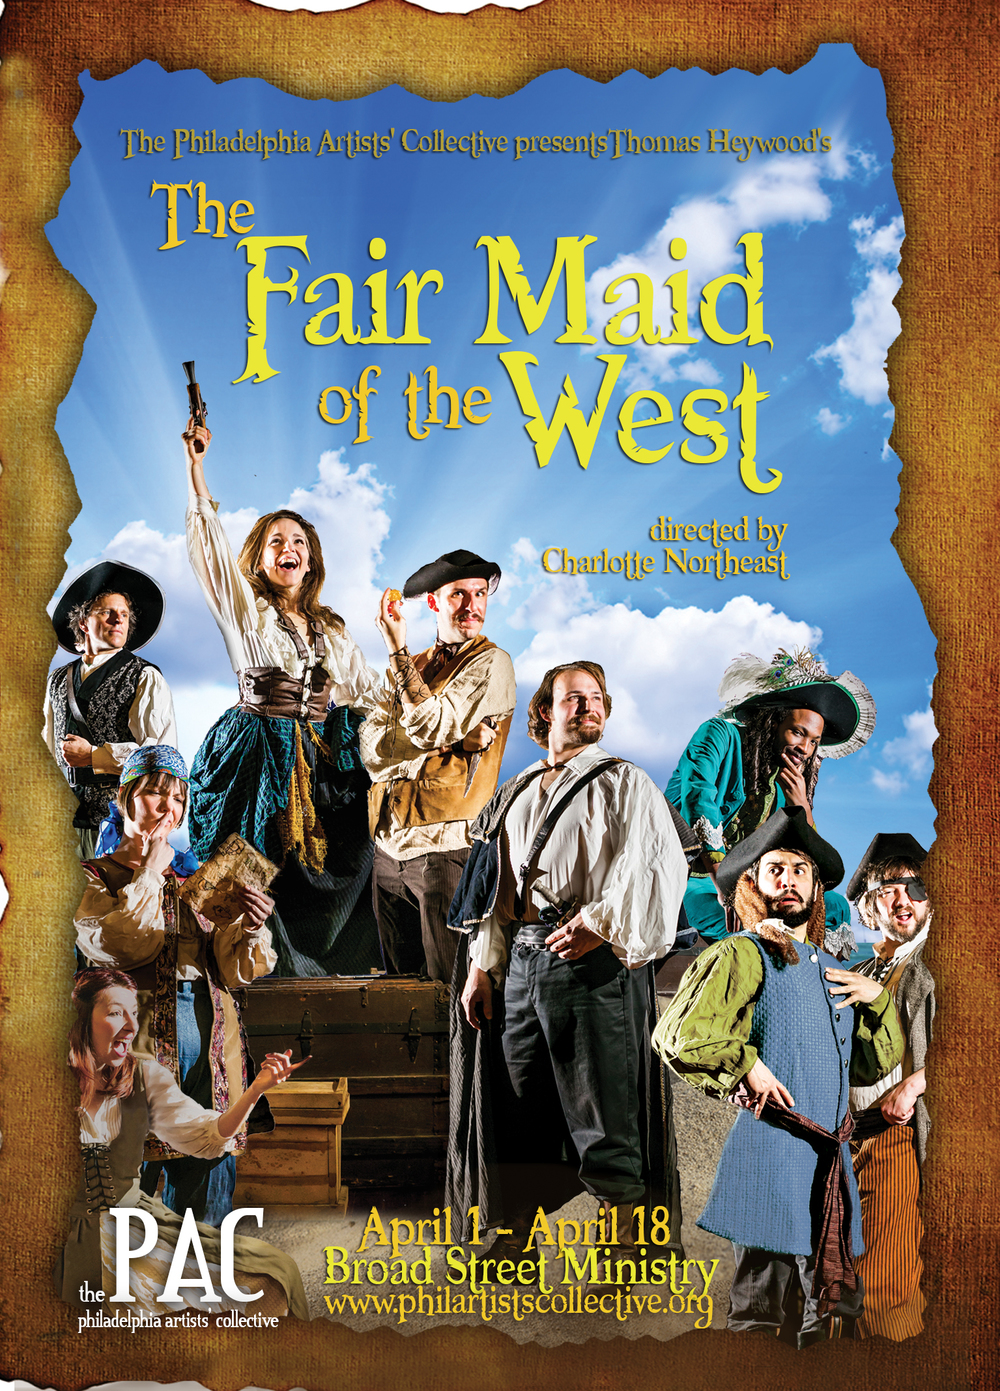 tHE fAIR mAID OF THE wEST PRESENTED BY tHE PHILADELPHIA ARTISTS' COLLECTIVE aPRIL 1-18, 2015